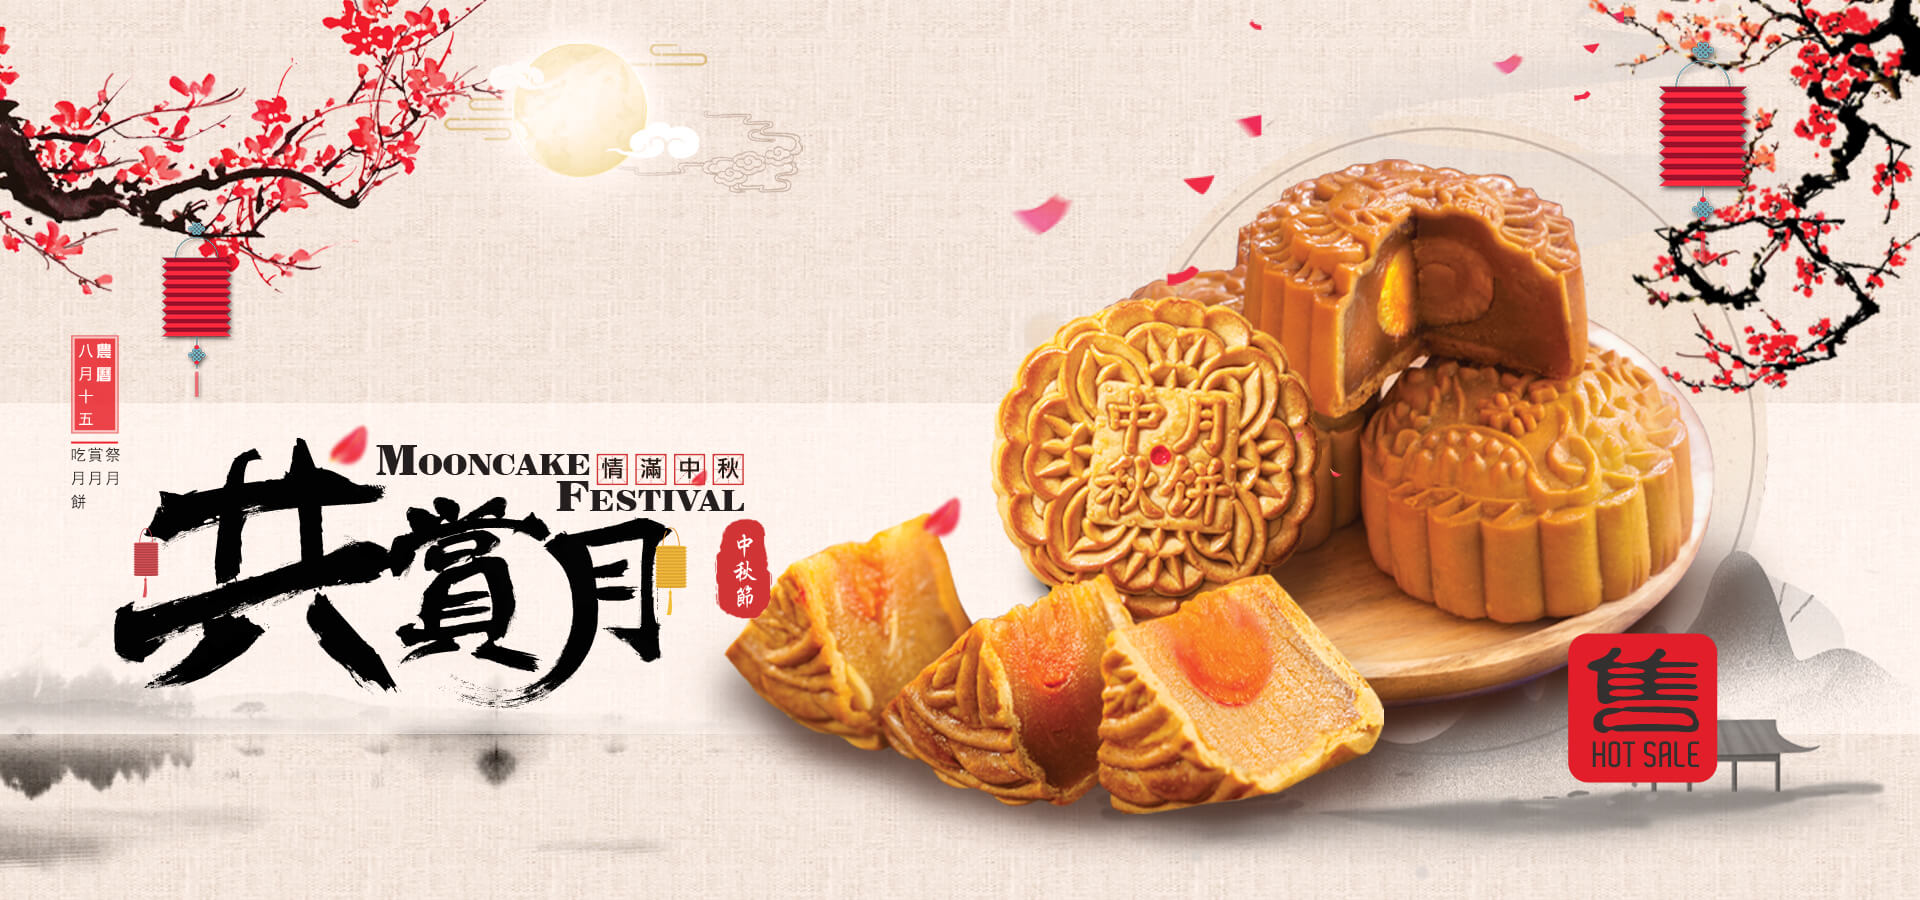 1920X900-Mooncake-English+Chinese